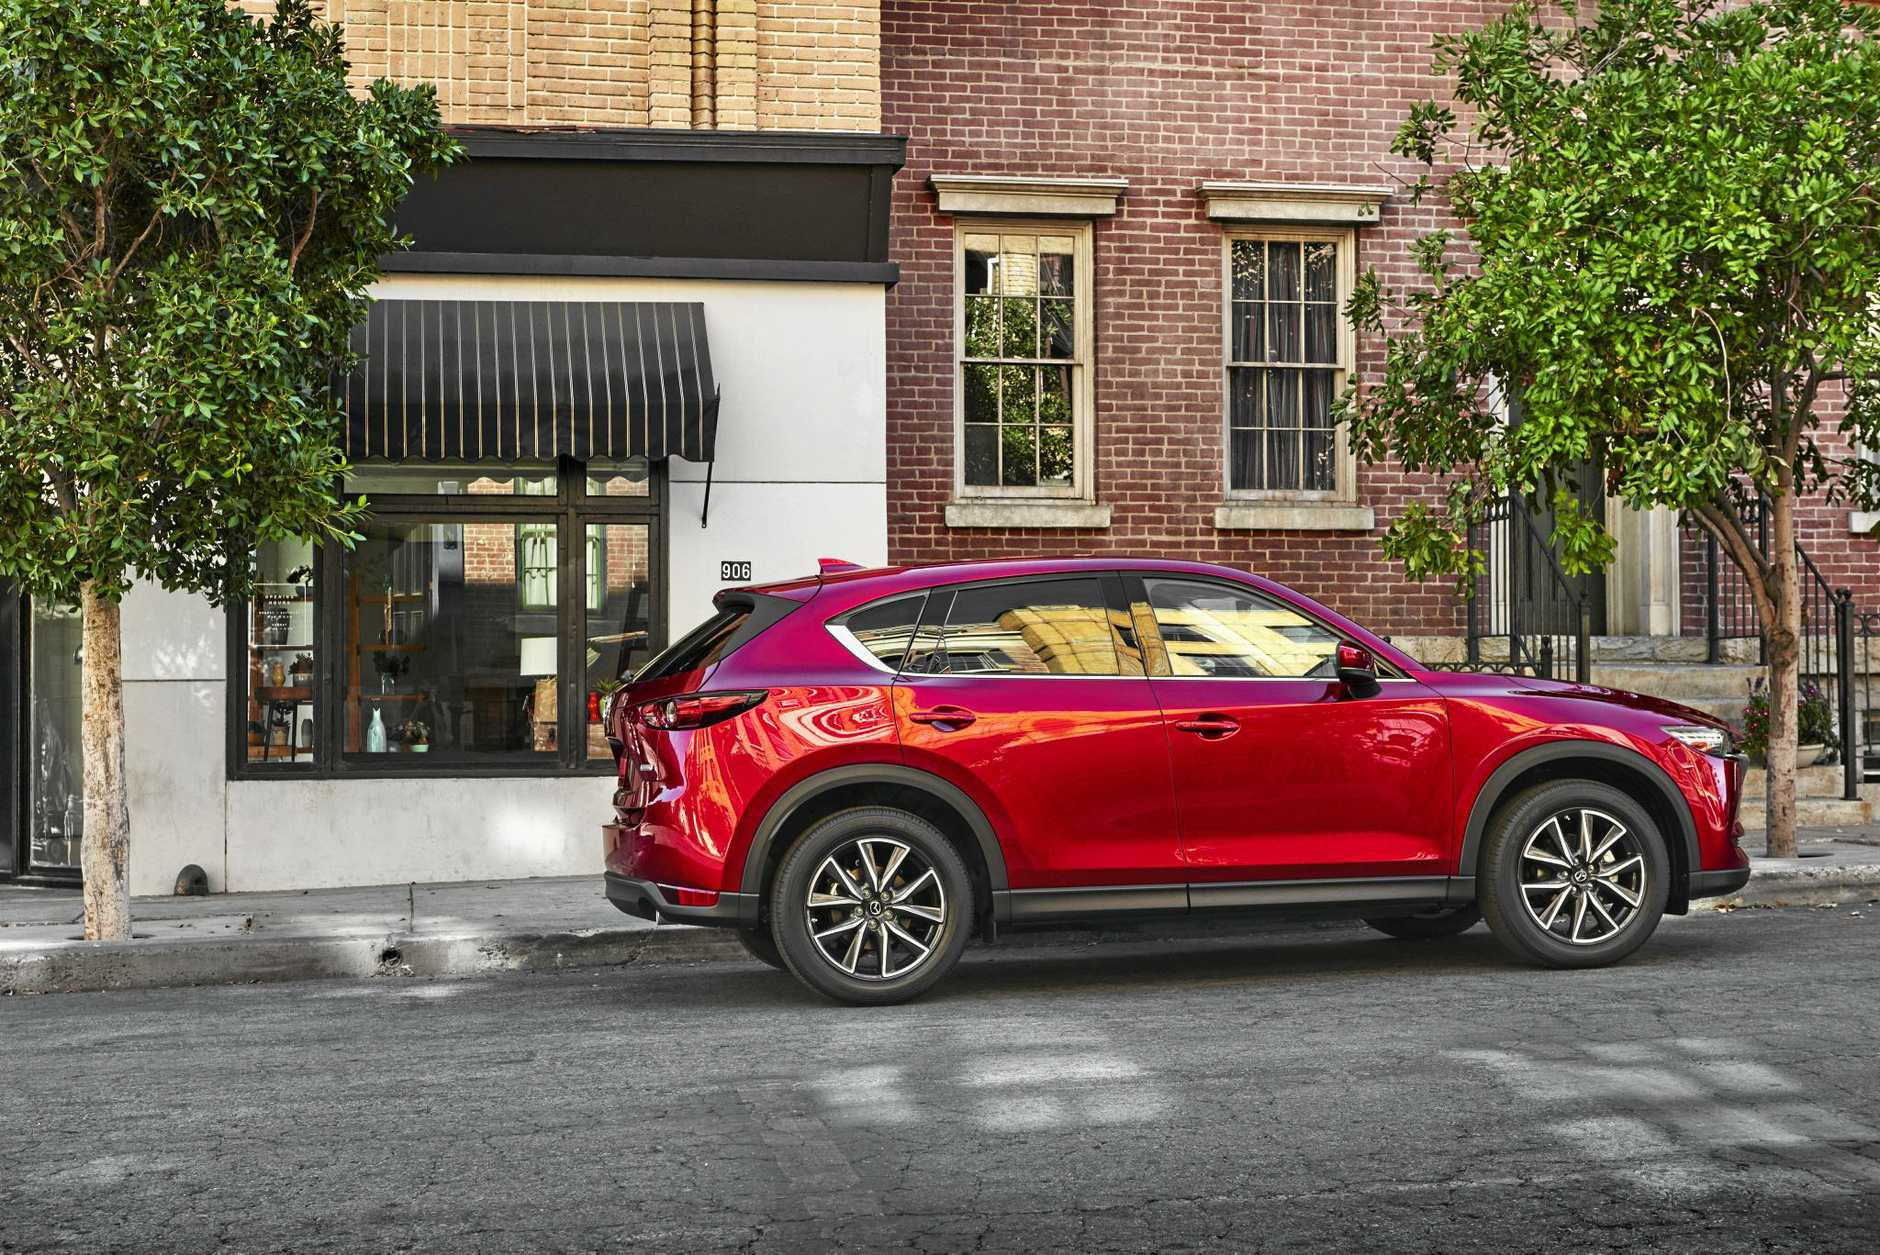 The 2017 Mazda CX-5 crossover SUV.